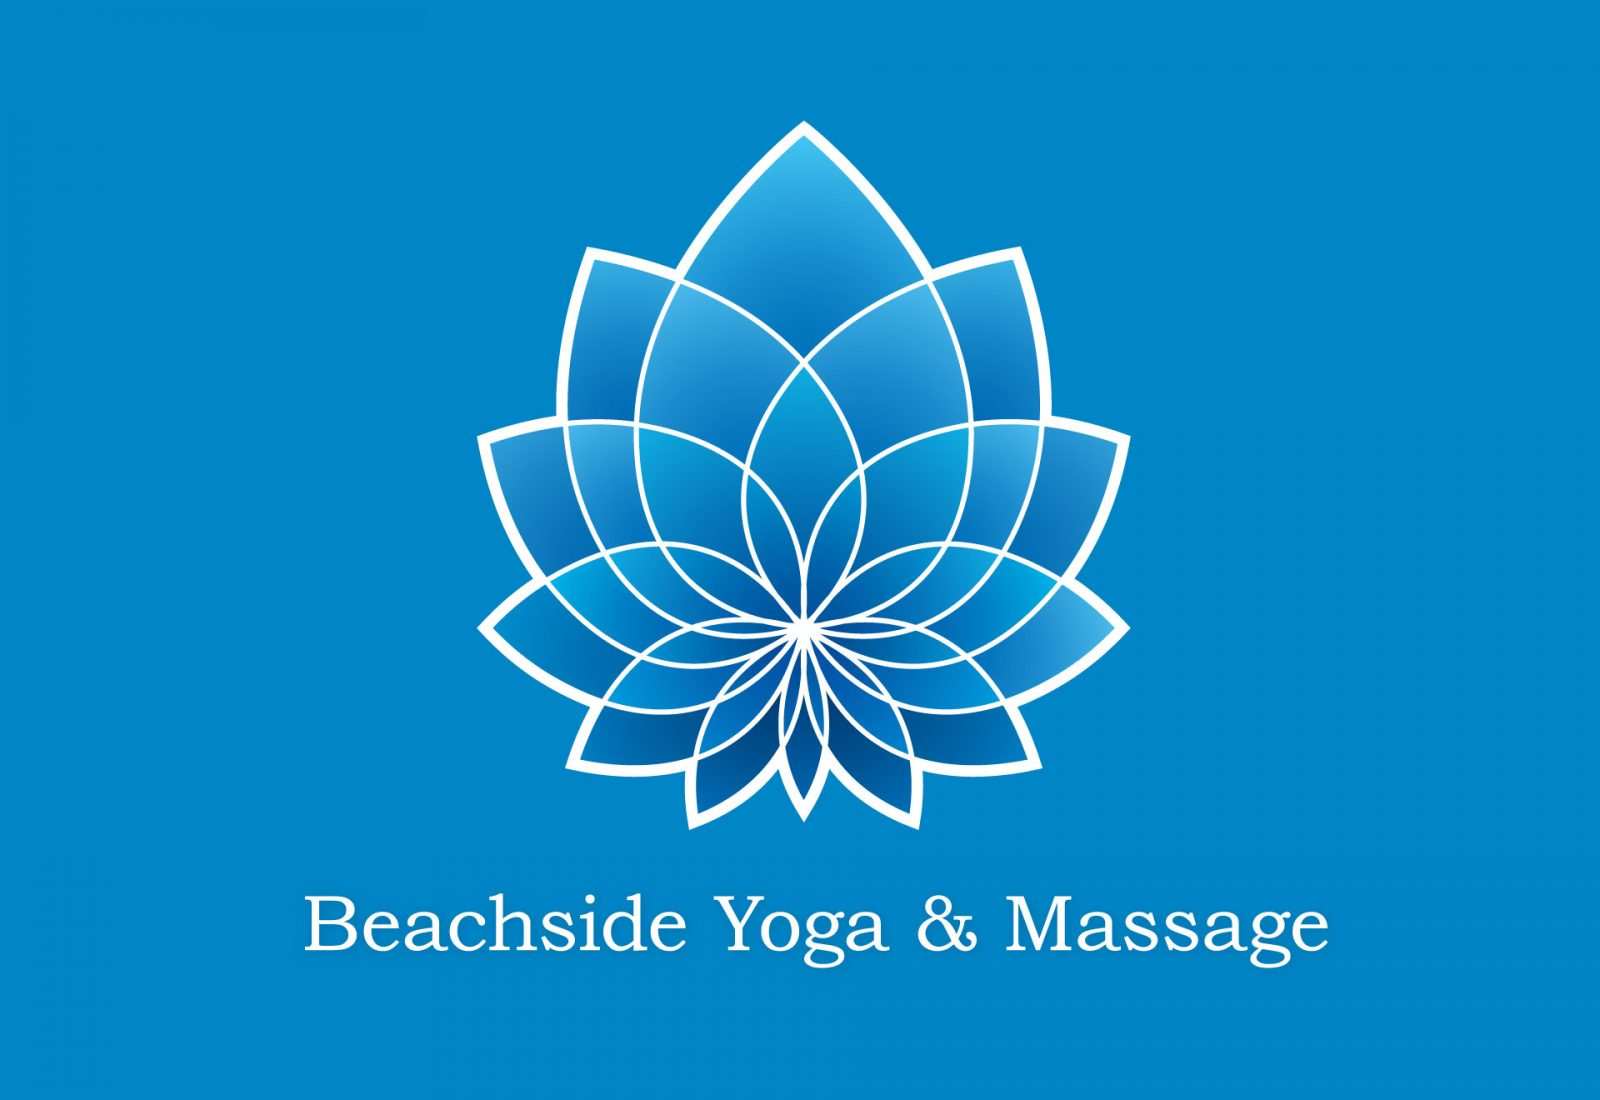 Logo design and branding for Beachside Yoga & Massage, Byron Bay.